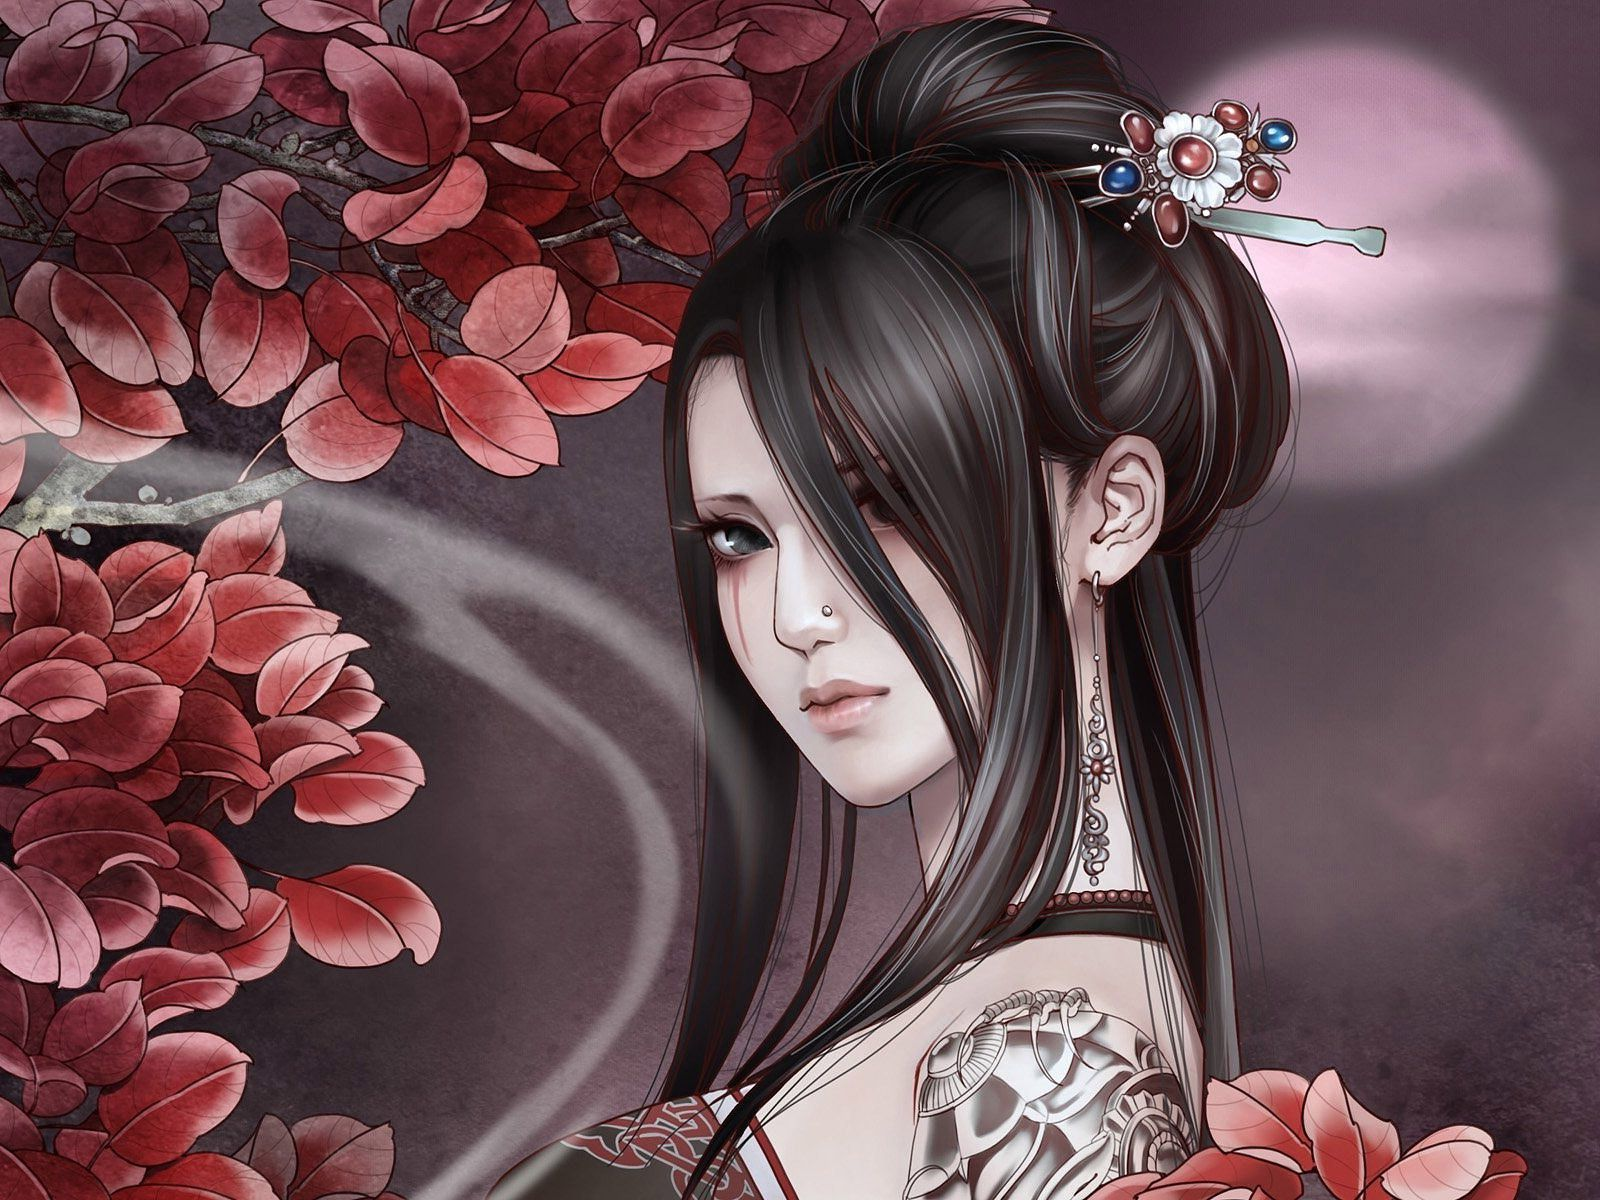 Wallpaper Of A Gothic Anime Girl With